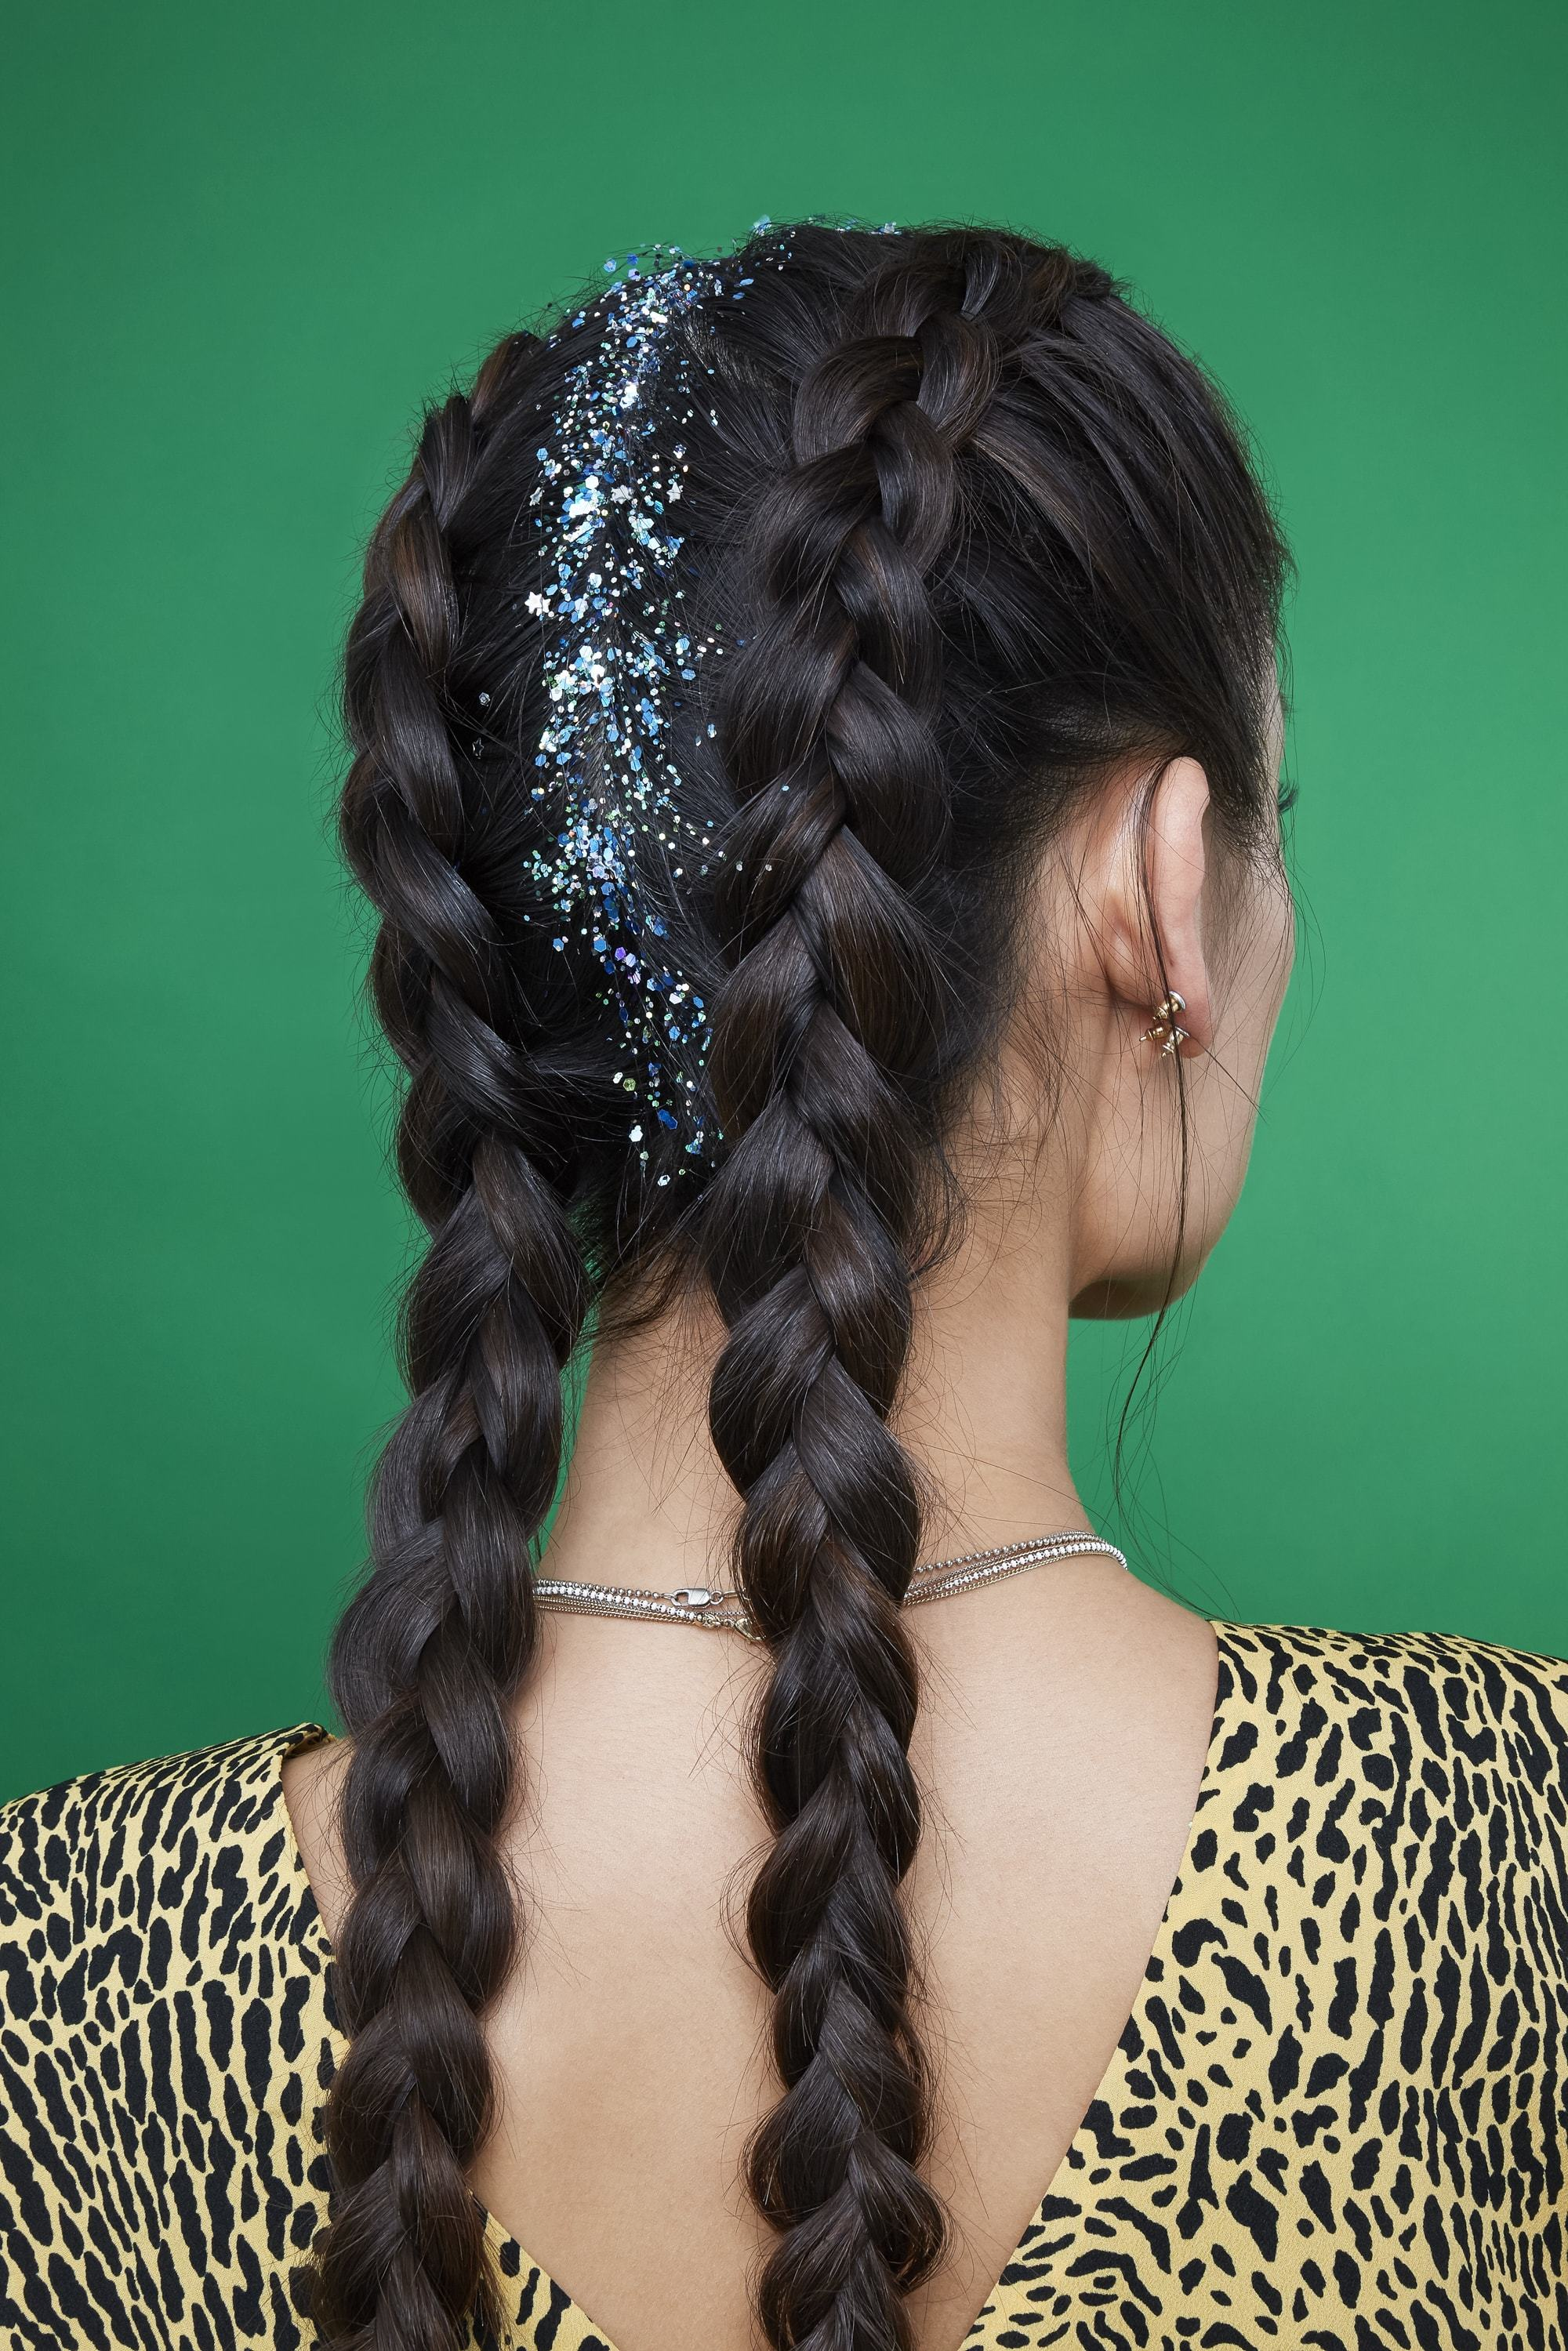 glitter roots how to: back shot of woman with glitter roots in her dark chocolate brown hair, fashioned into boxer braids and decorated with silver blue glitter roots, wearing a leopard print festival outfit